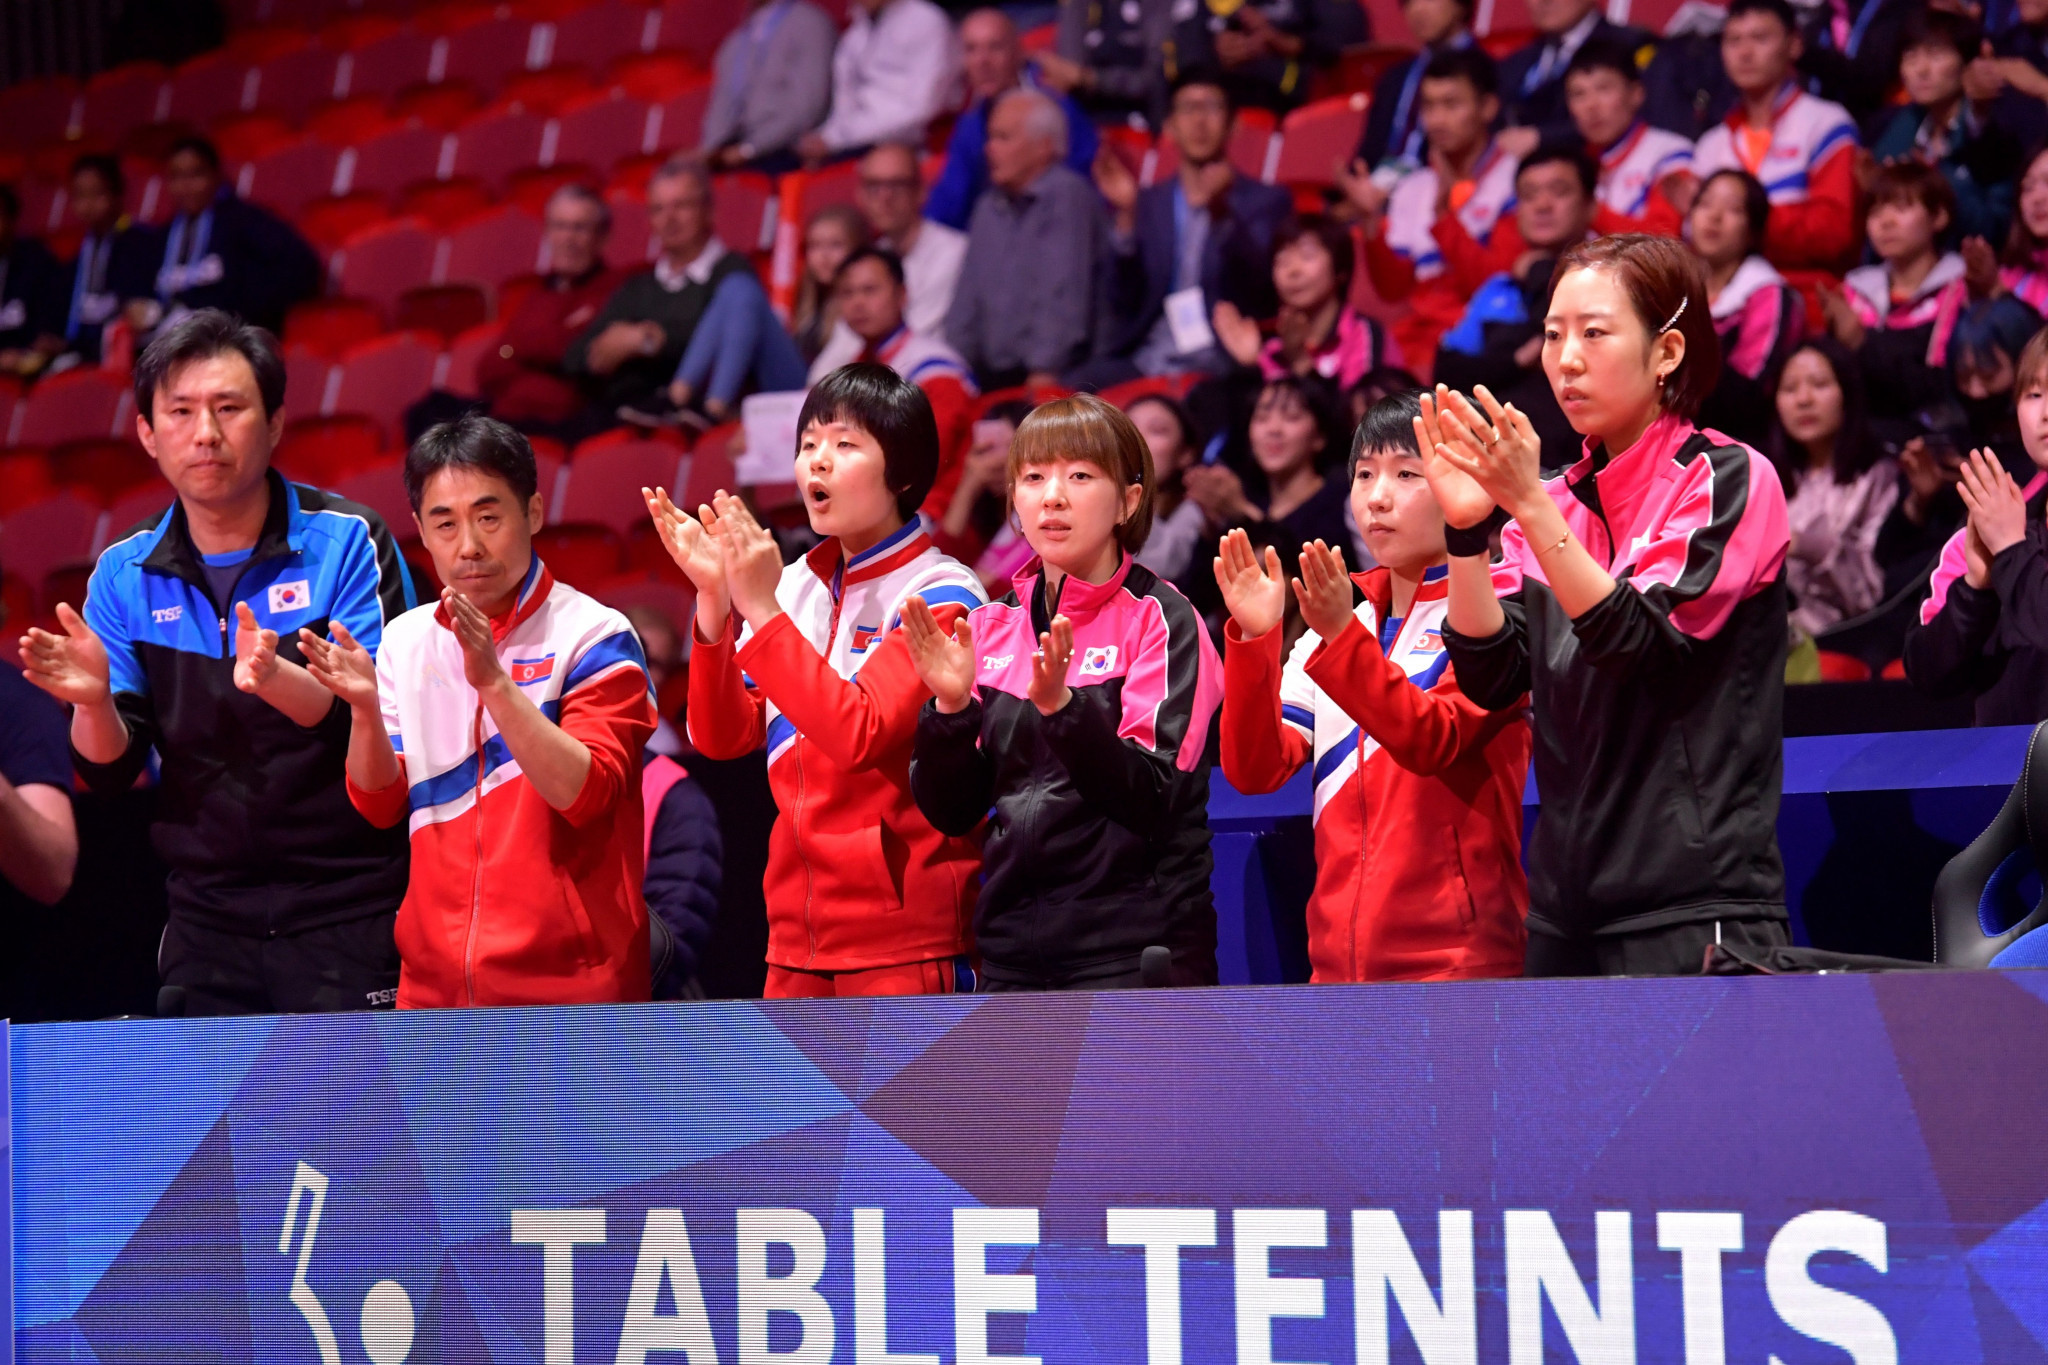 South Korean players miss entry deadline for table tennis event in North Korea